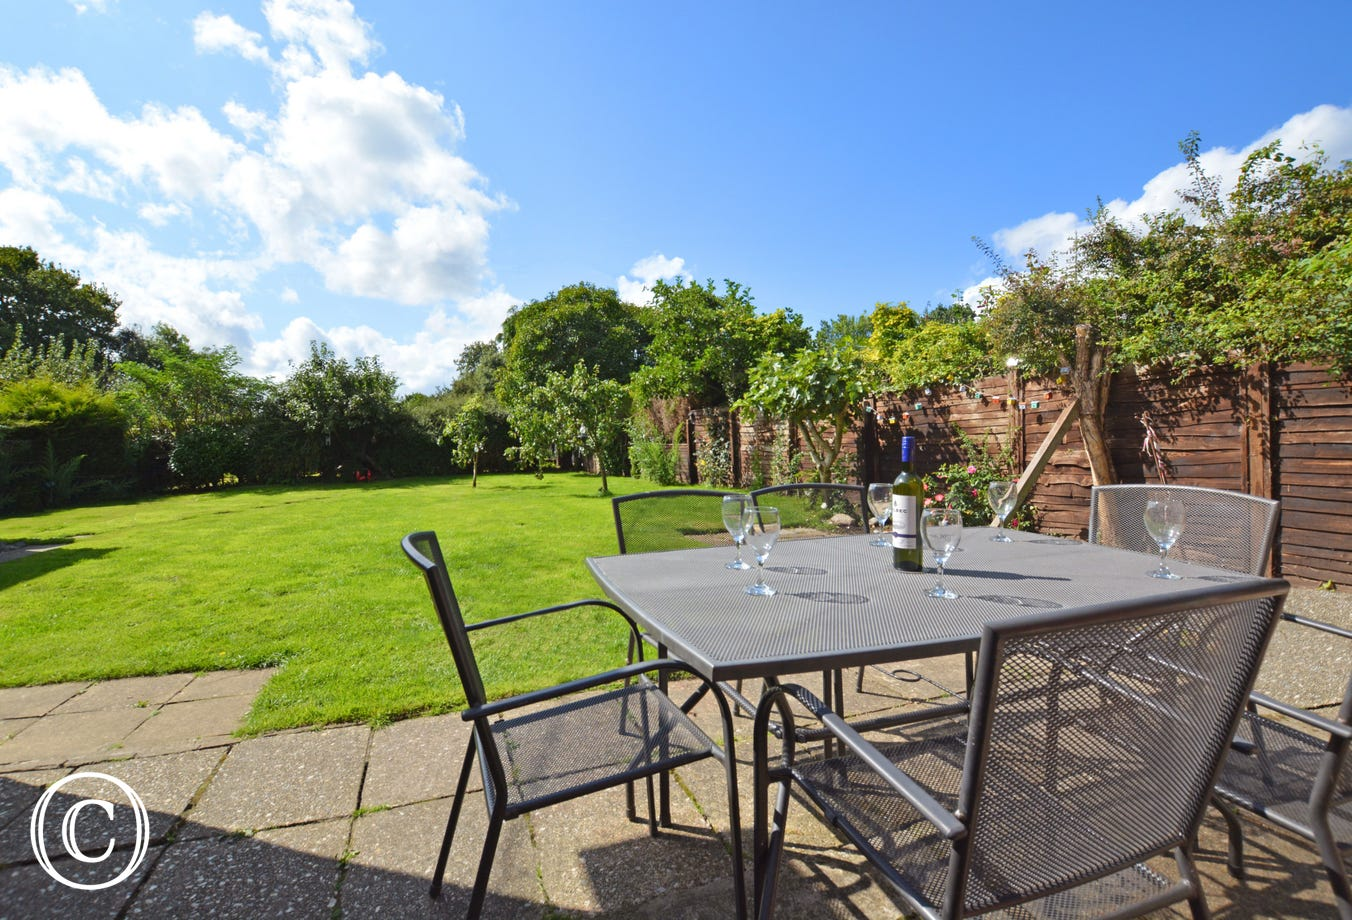 Patio with table and chairs - perfect for a spot of alfresco dining!